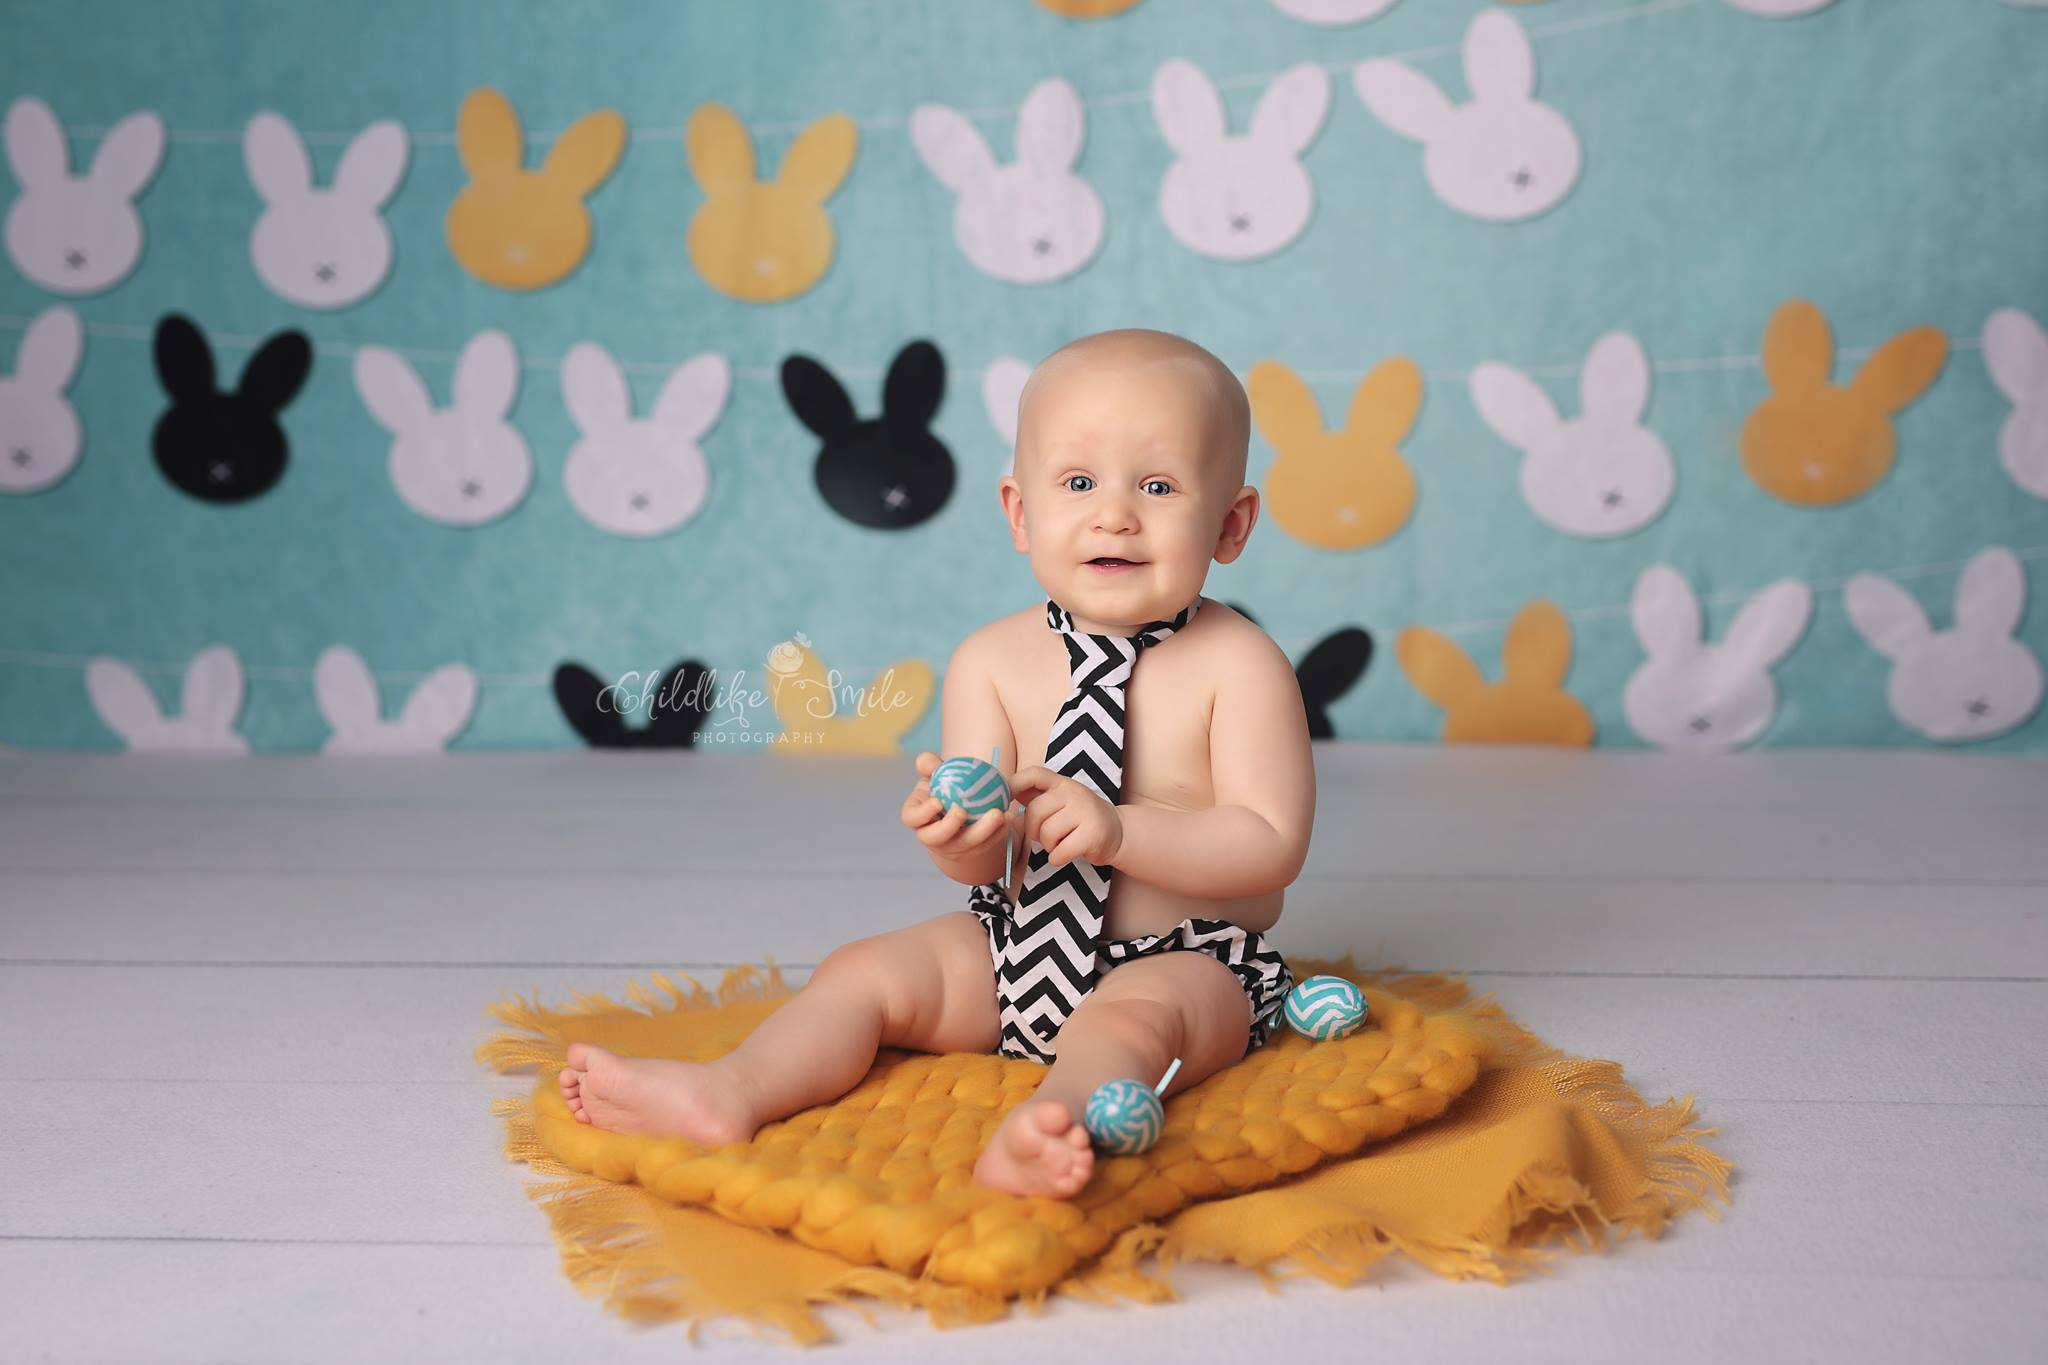 Load image into Gallery viewer, Kate Rabbits Easter Backdrop for Photography designed by Jerry_Sina